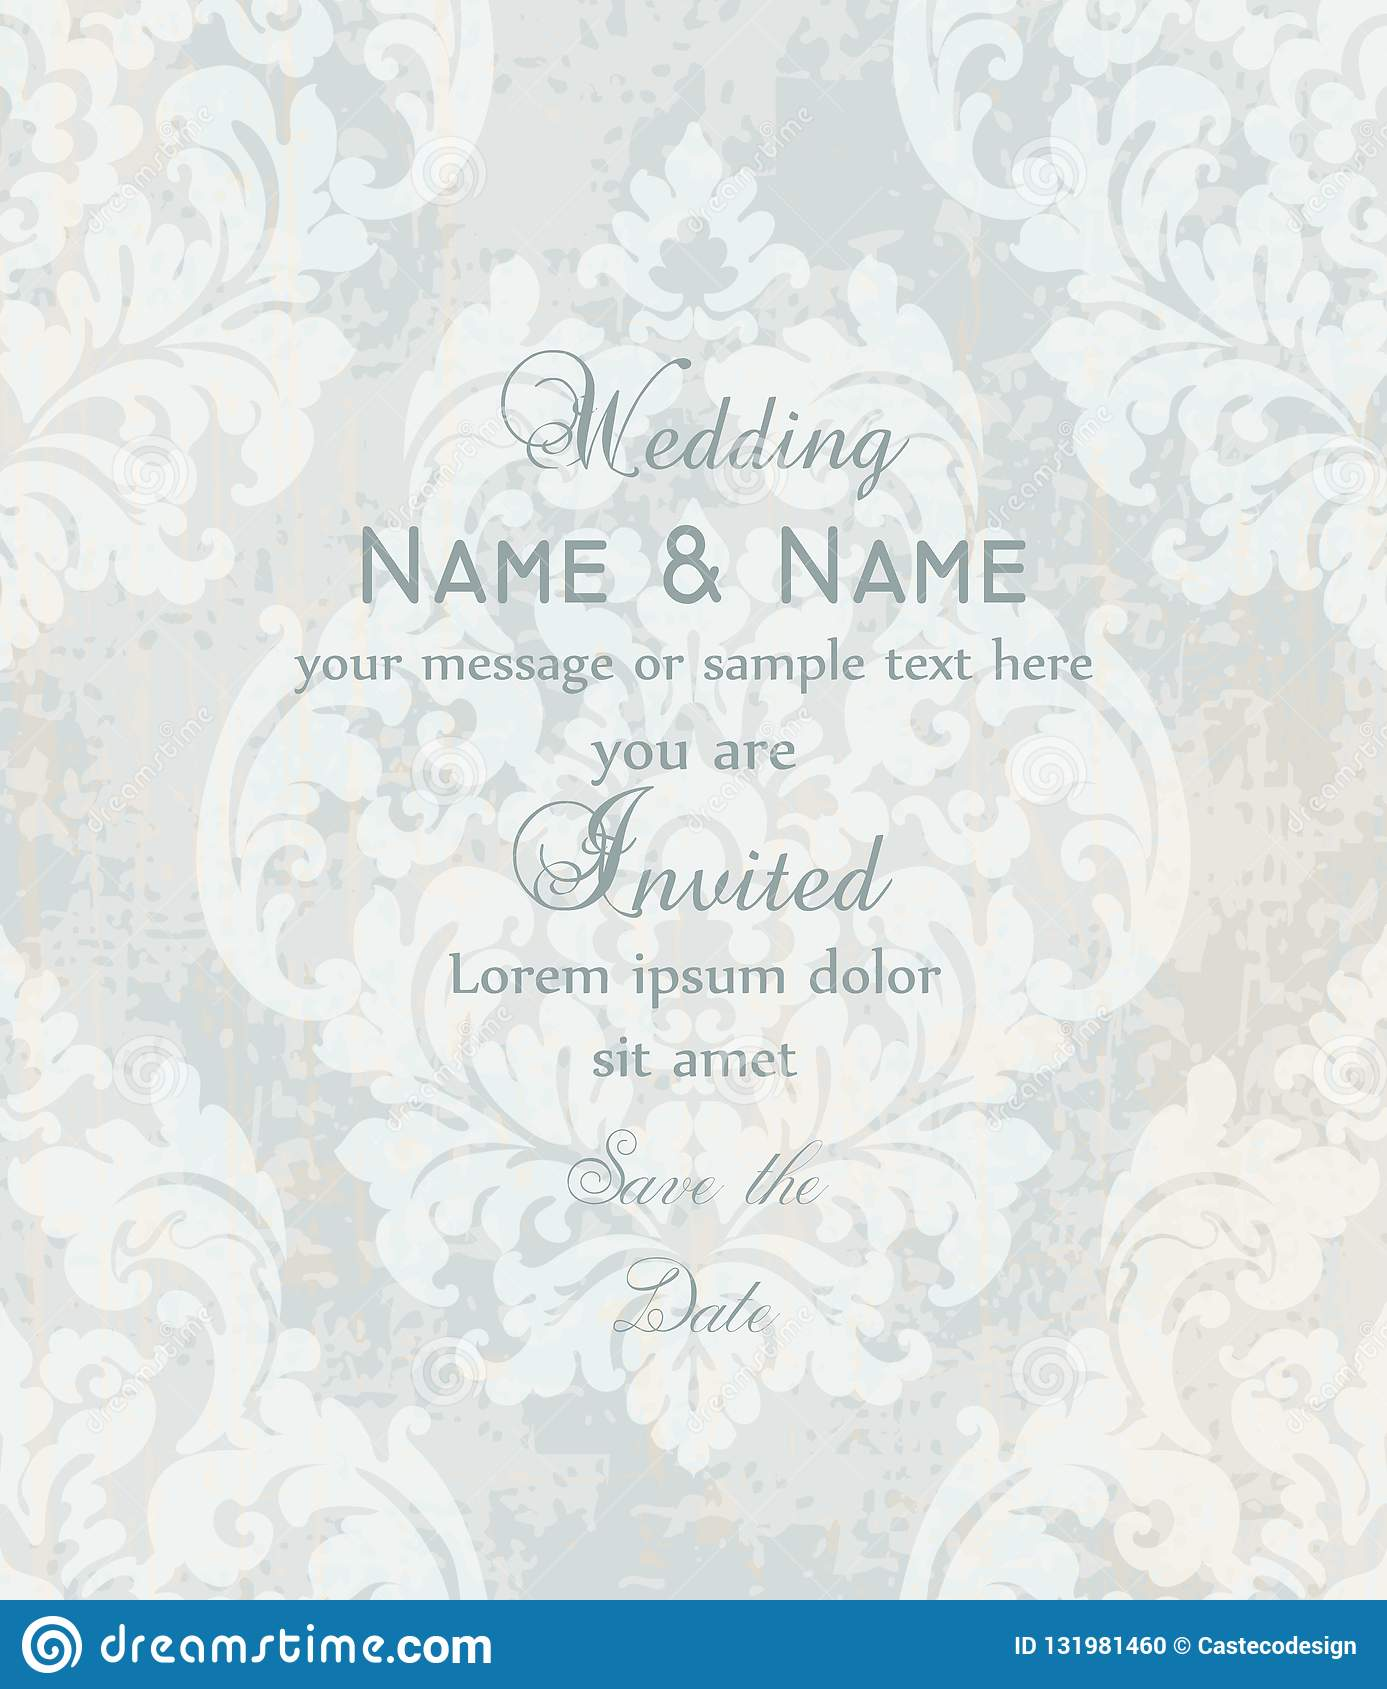 Vintage Baroque Victorian Invitation card Vector. Floral ornament decoration. Light colors